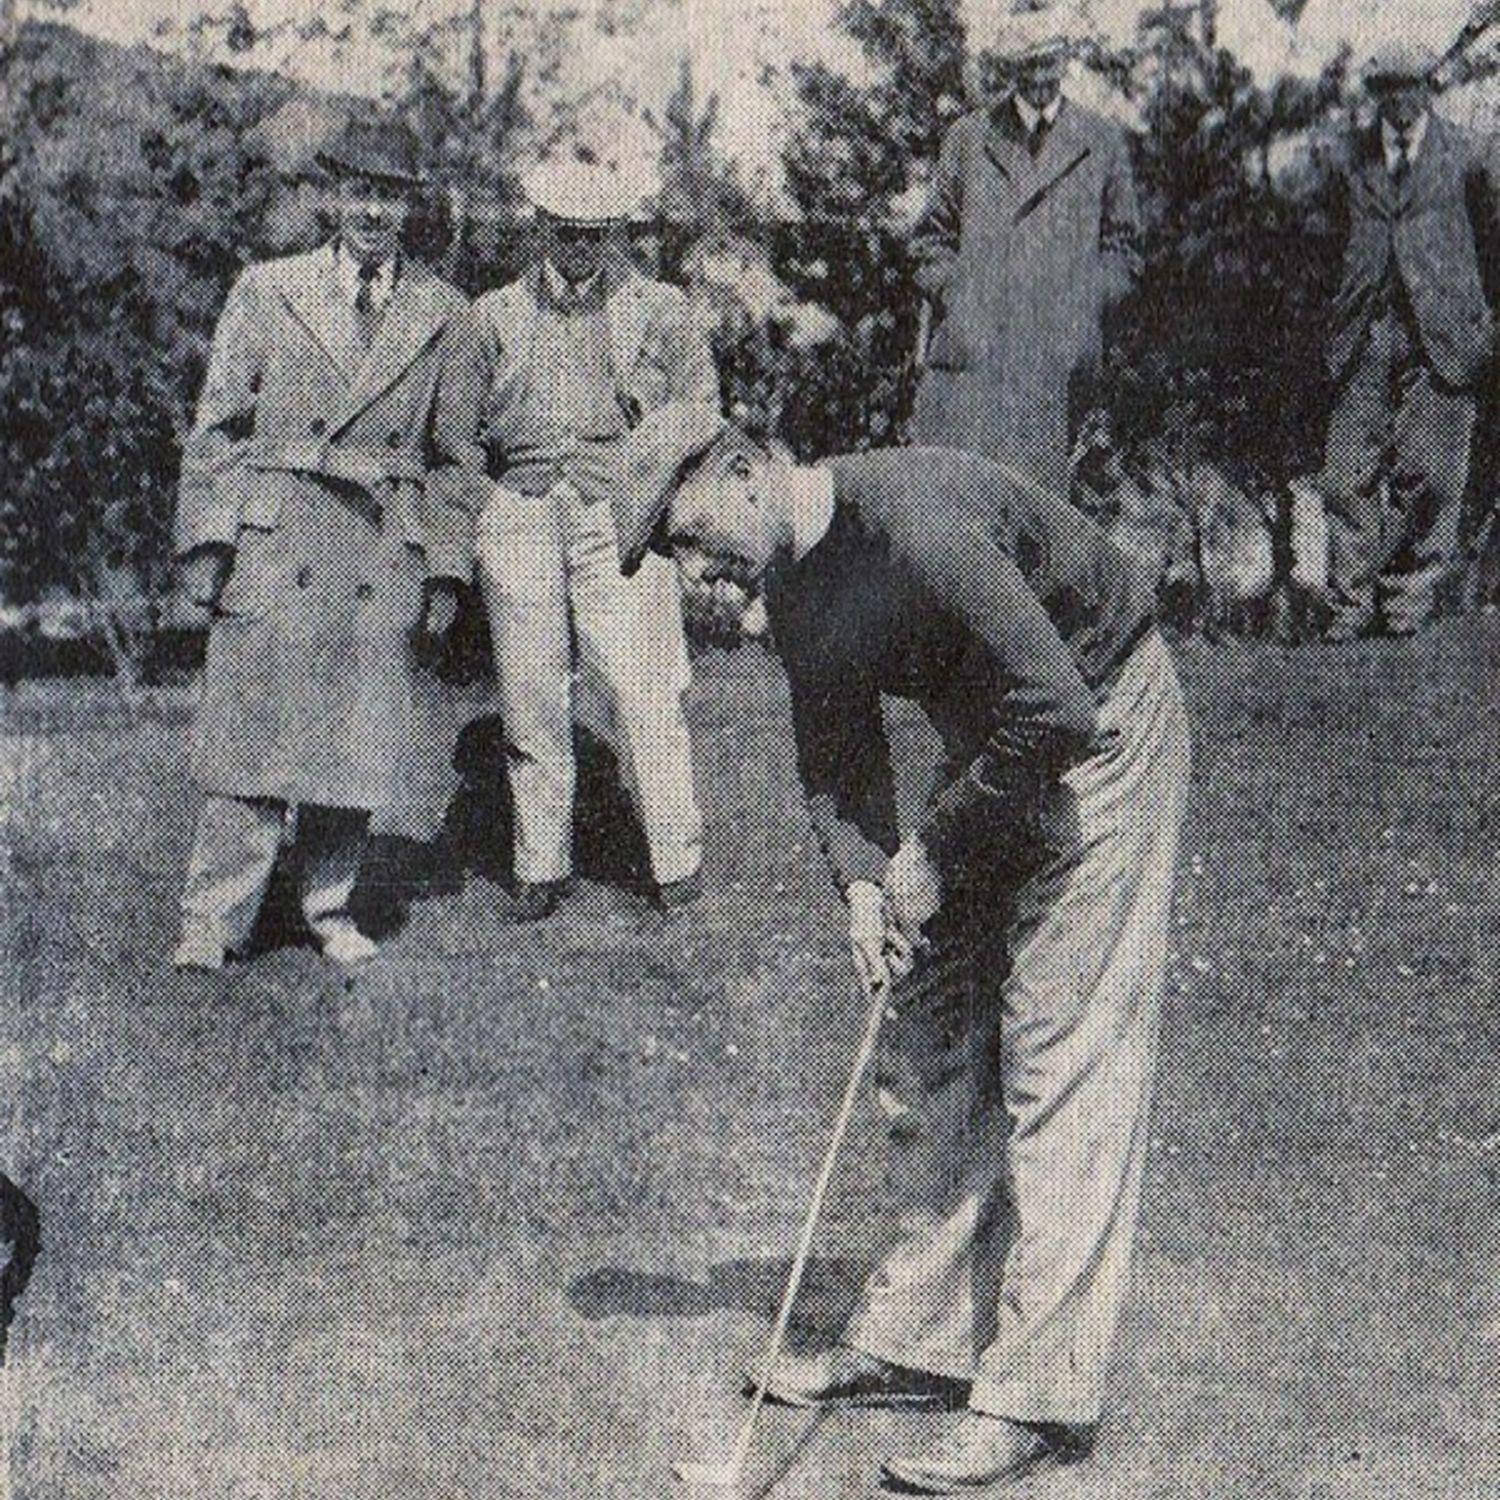 1938. R.A. Howell putting in the final of the Sussex Amateur Golf Championship at Worthing.